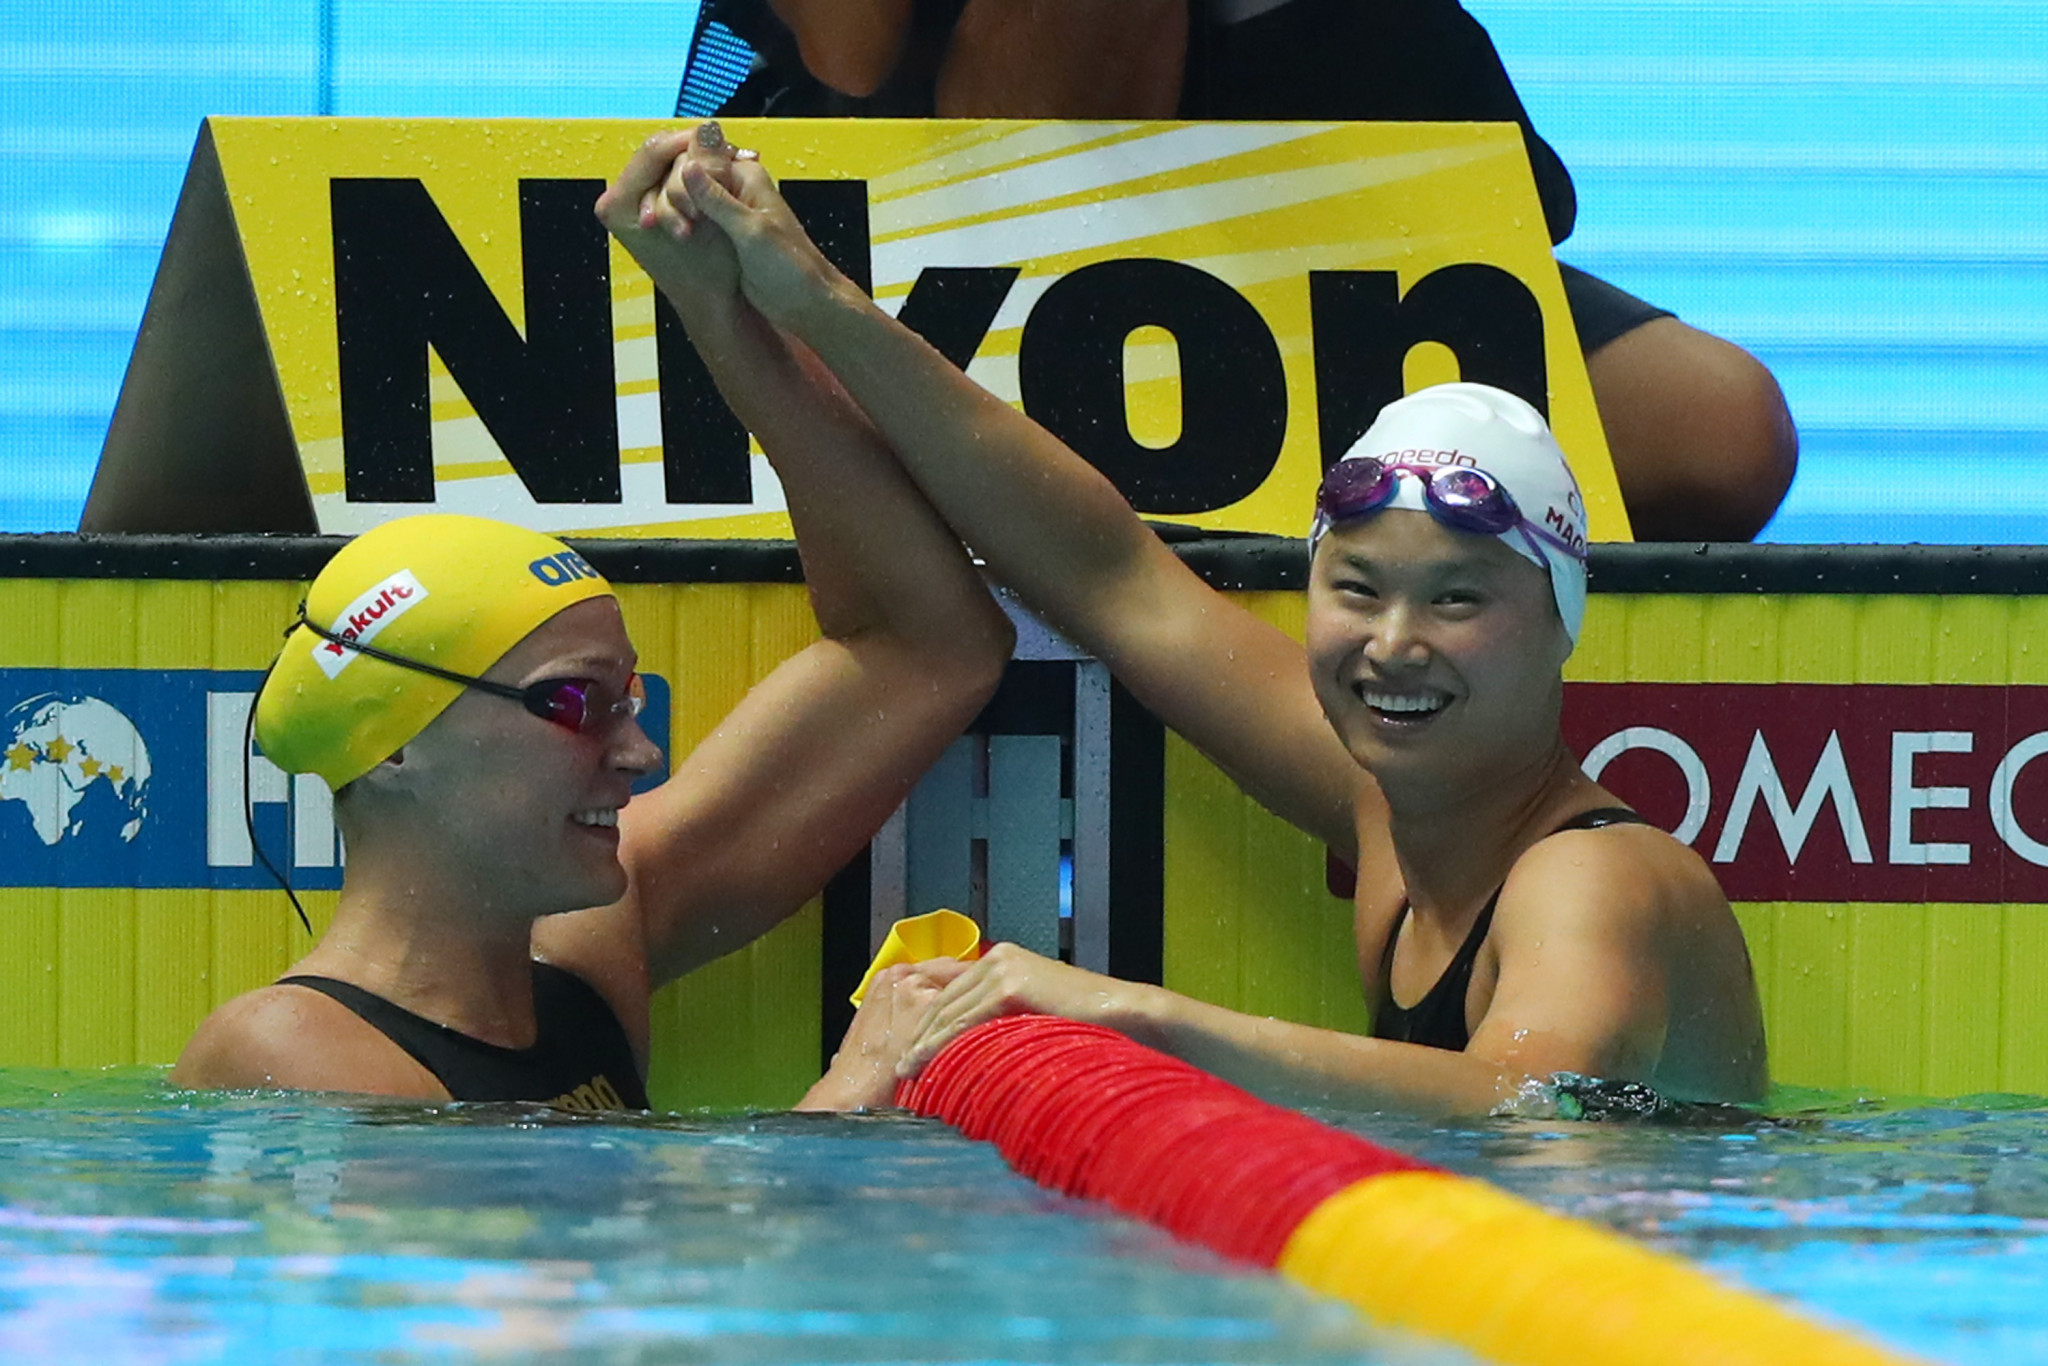 Canada's Maggie MacNeil, right, and Sarah Sjöström of Sweden were all smiles after claiming gold and silver medals respectively in the women's 100m butterfly final in Gwangju ©Getty Images